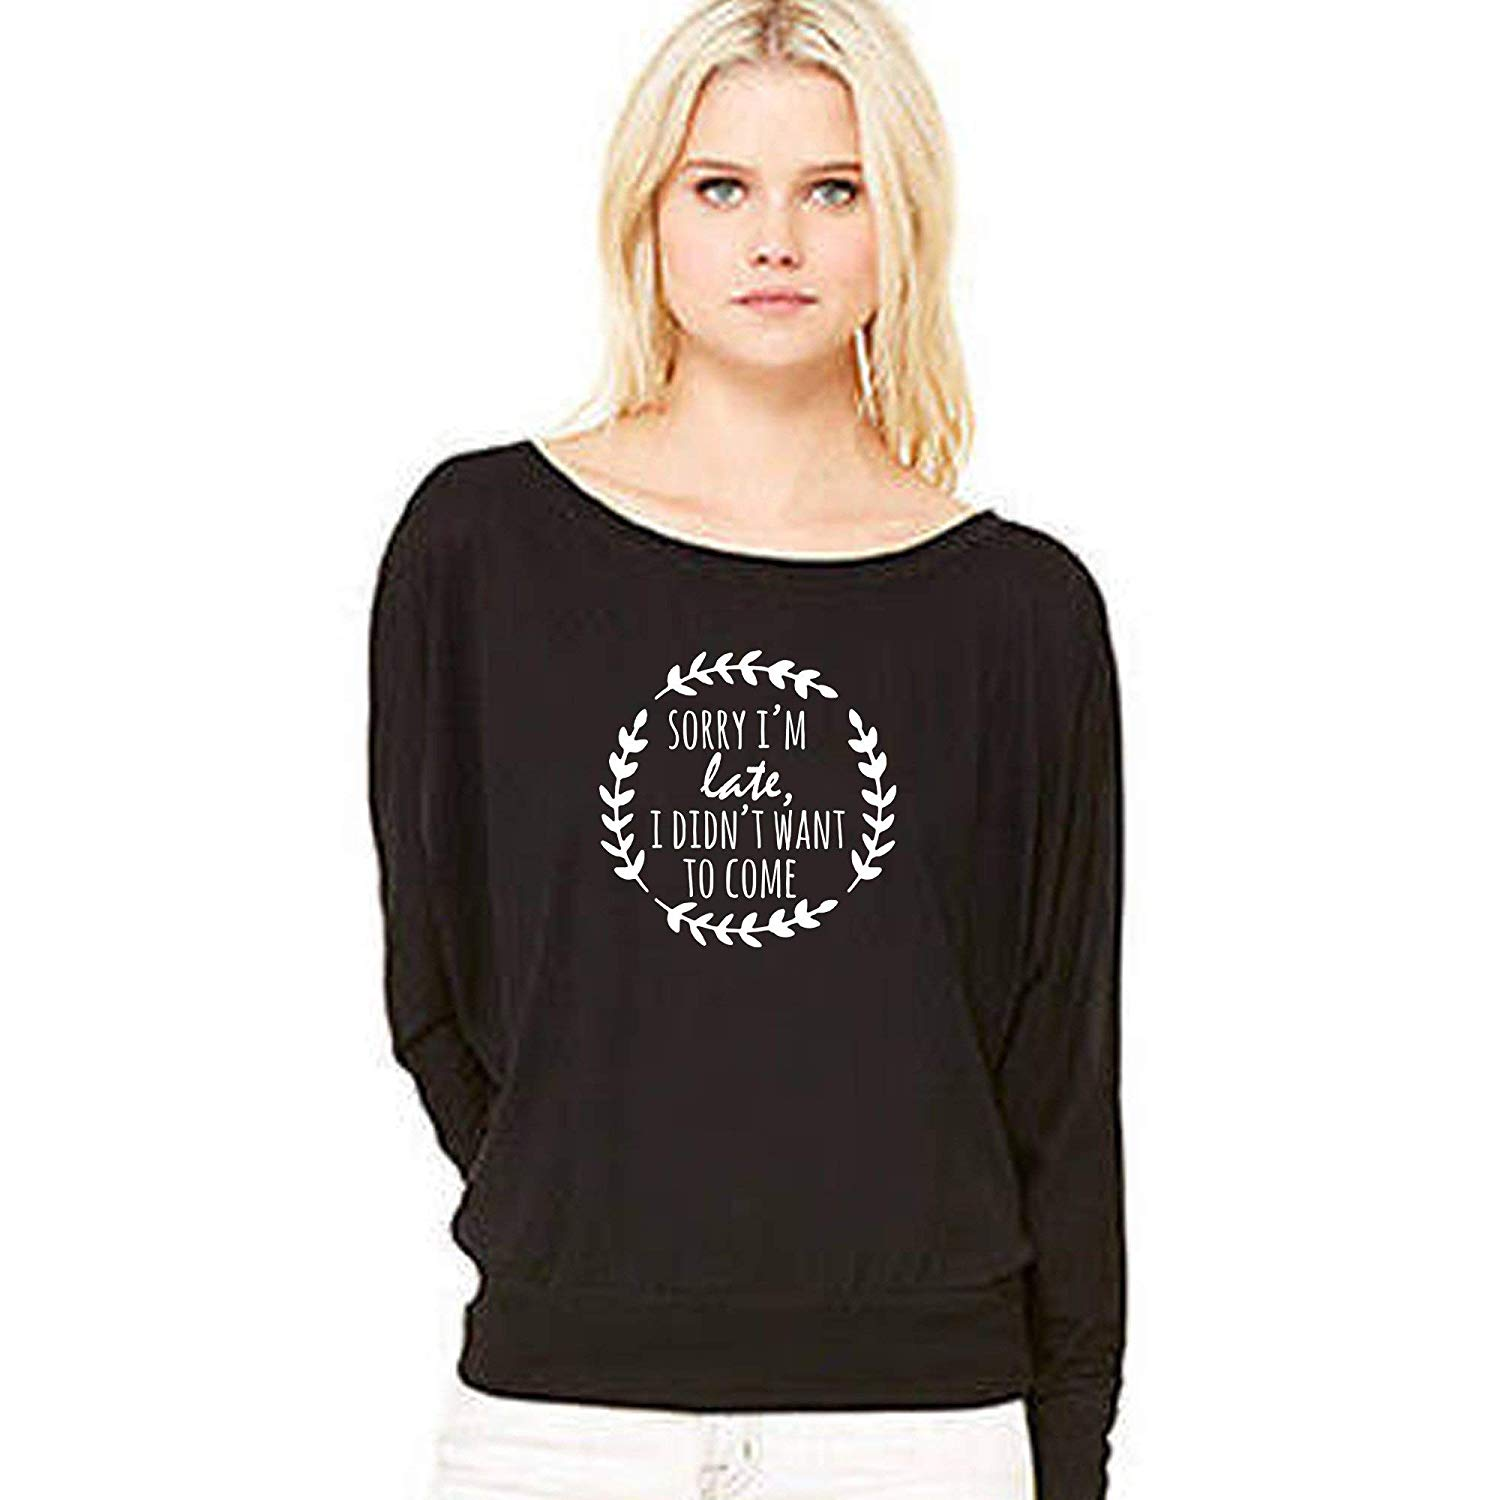 Sorry I'm Late I Didn't Want To Come, Women's Flowy off the Shoulder Tee, Screen Printed, Pun, Funny Gift for Her, Shirts with Sayings, Black